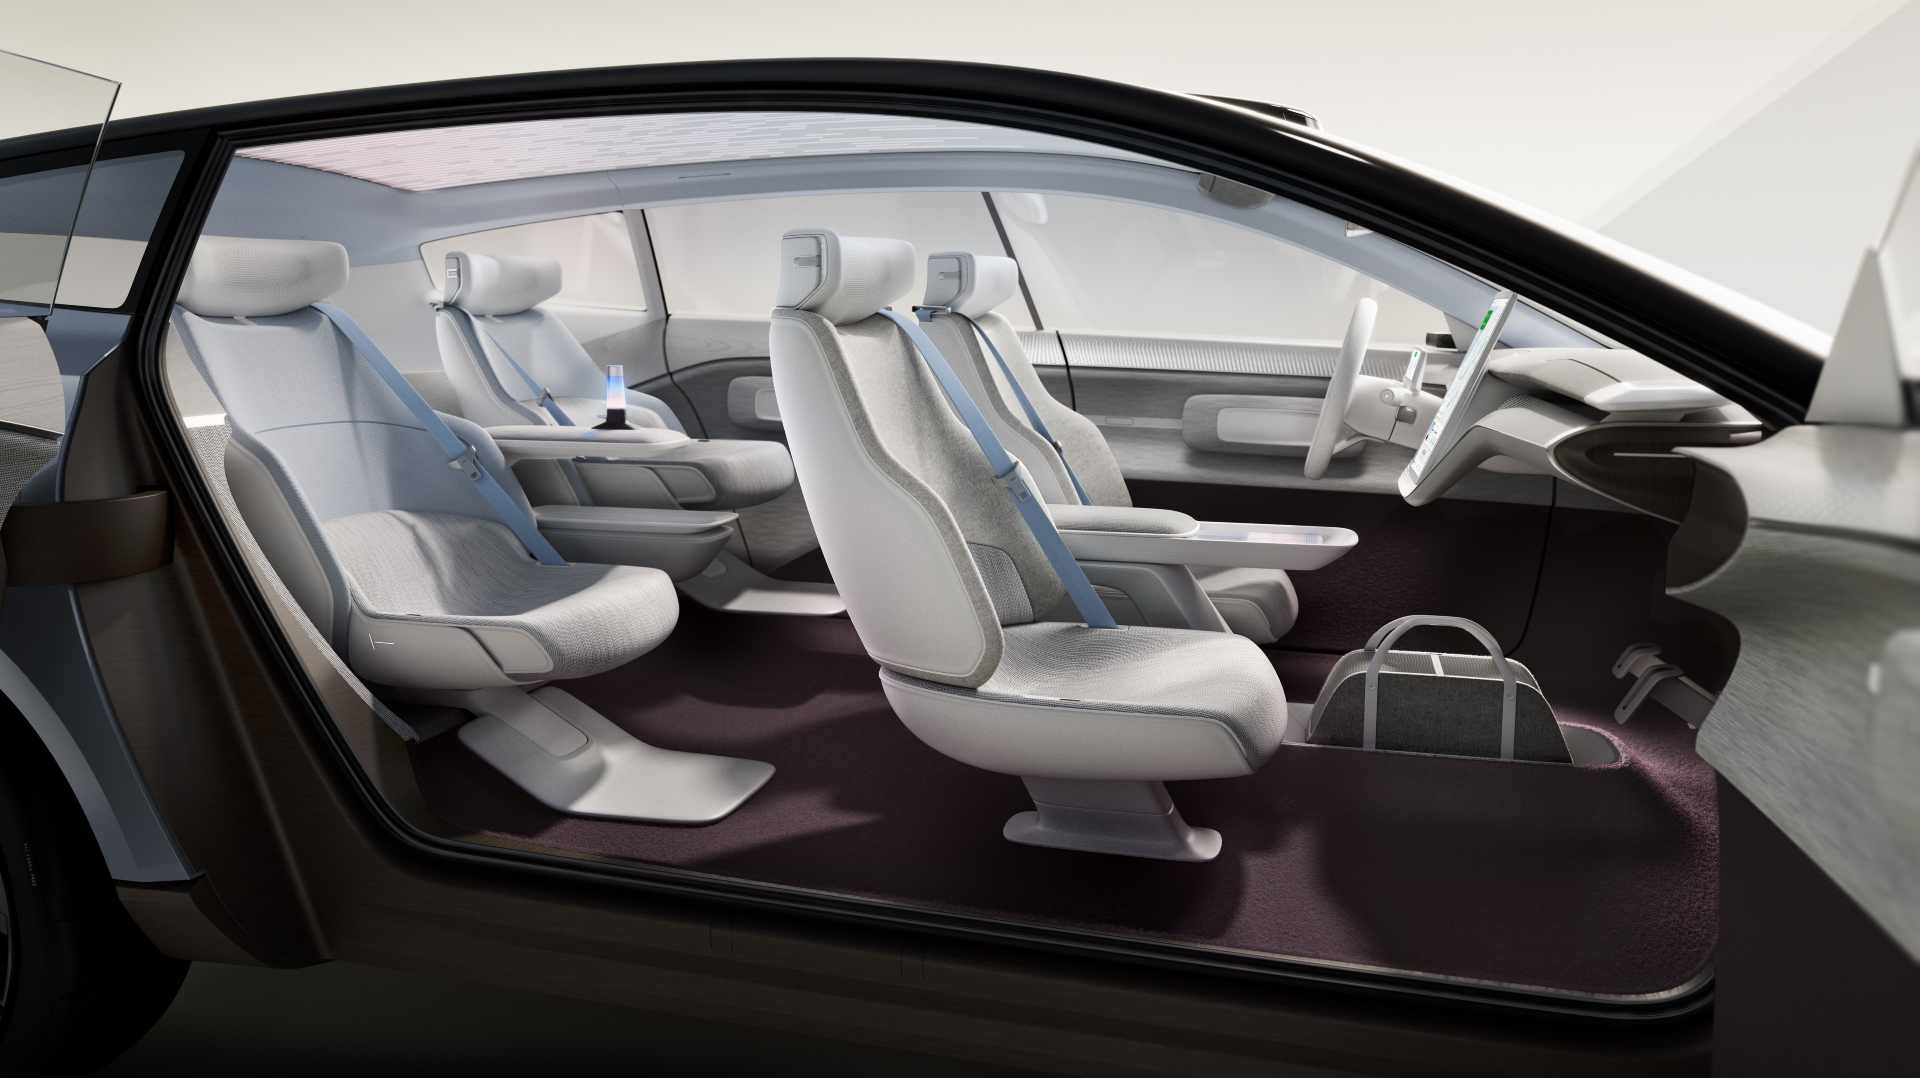 Long wheelbase and flat floor mean there's plenty of space inside the Concept Recharge. Image: Volvo